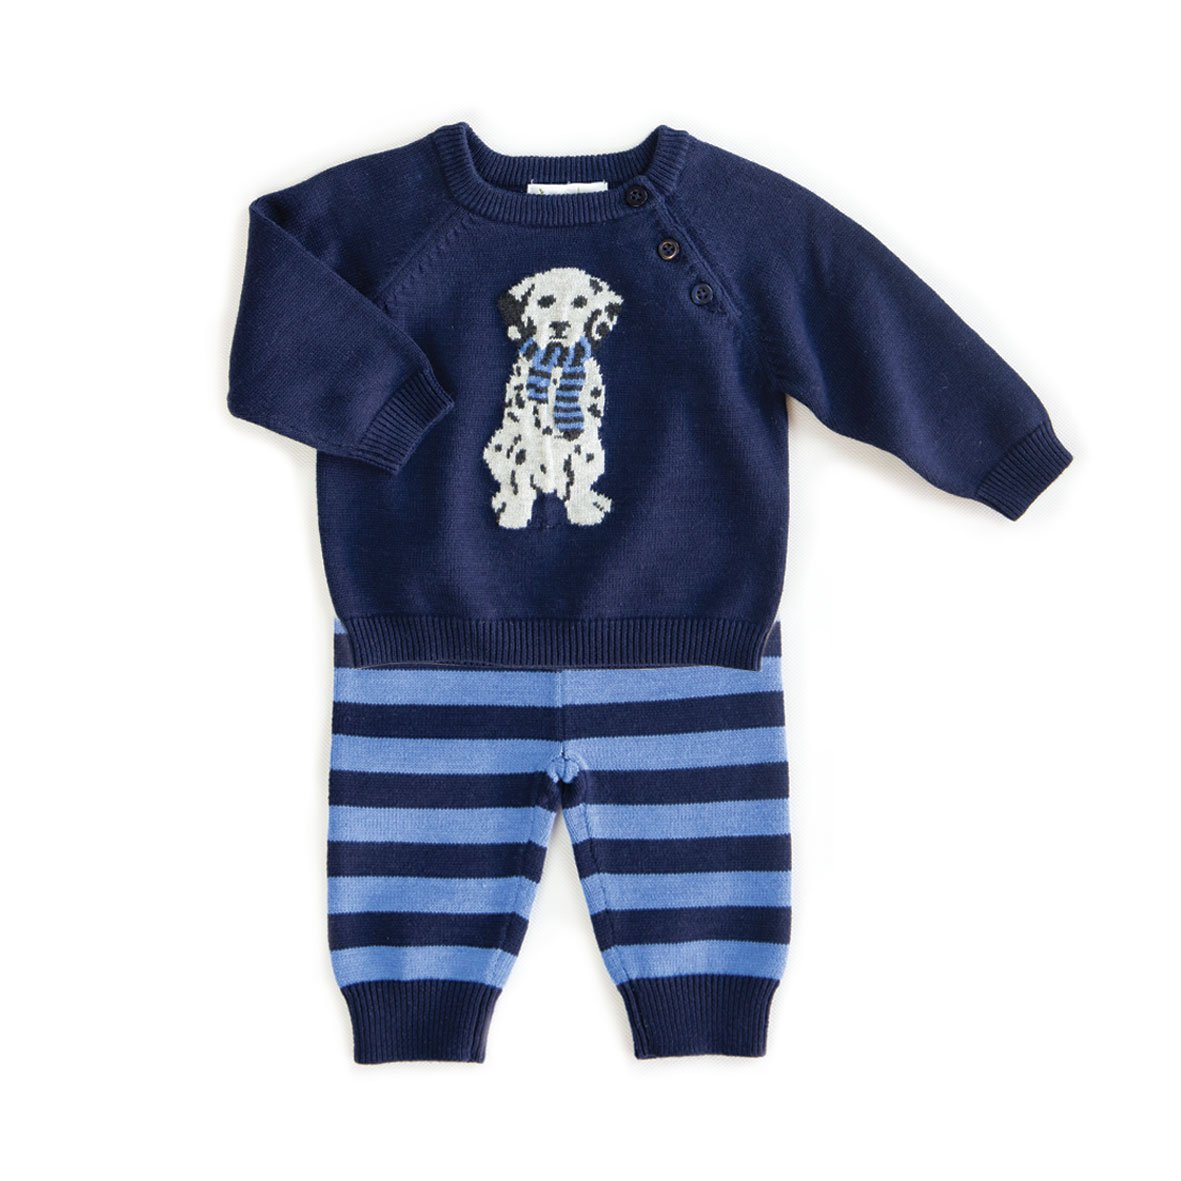 BEANSTORK - Doggy 2 Piece Set Multi Blue